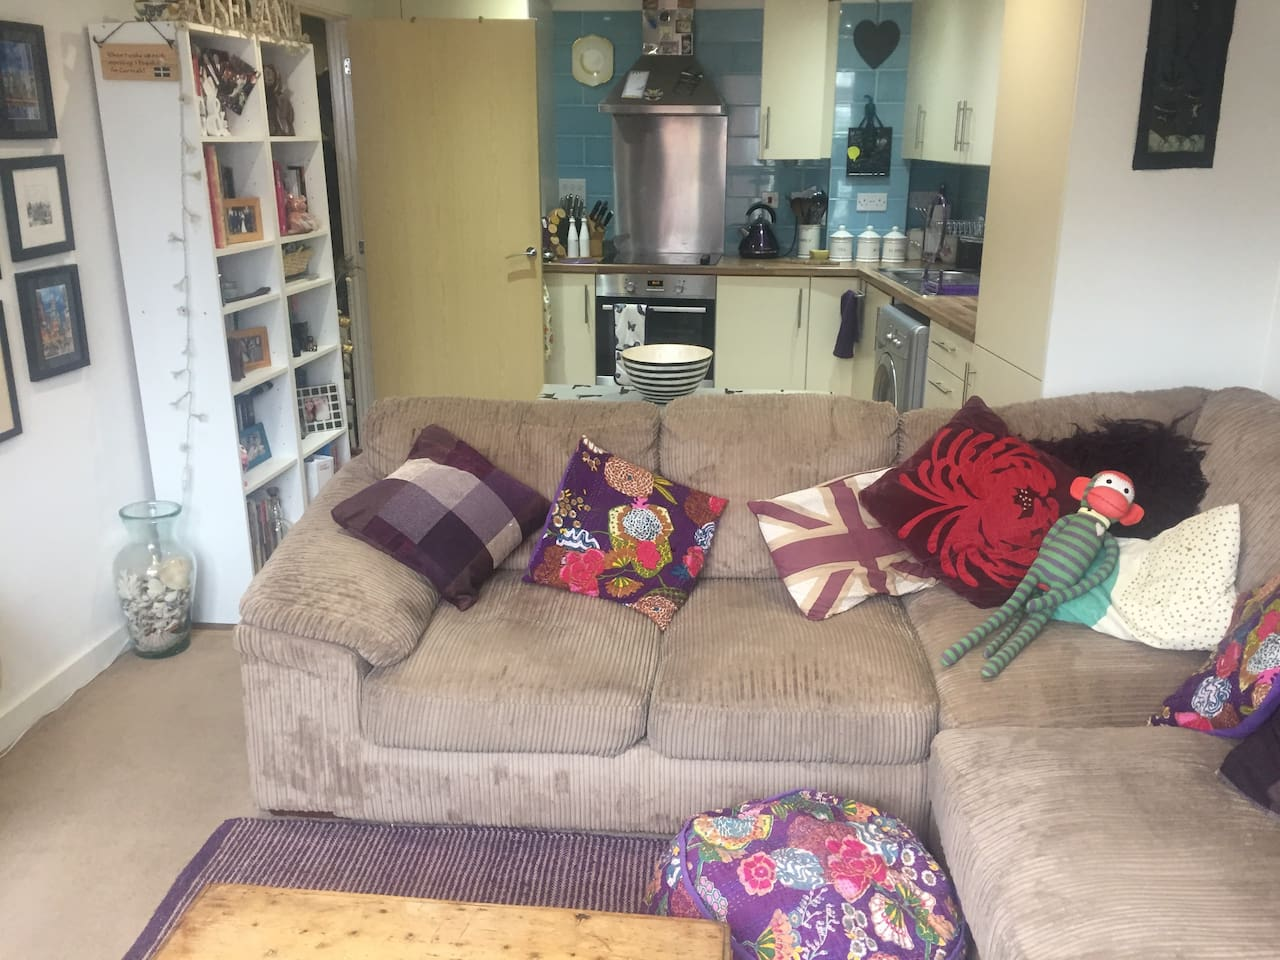 Open plan kitchen and living room with sofa bed